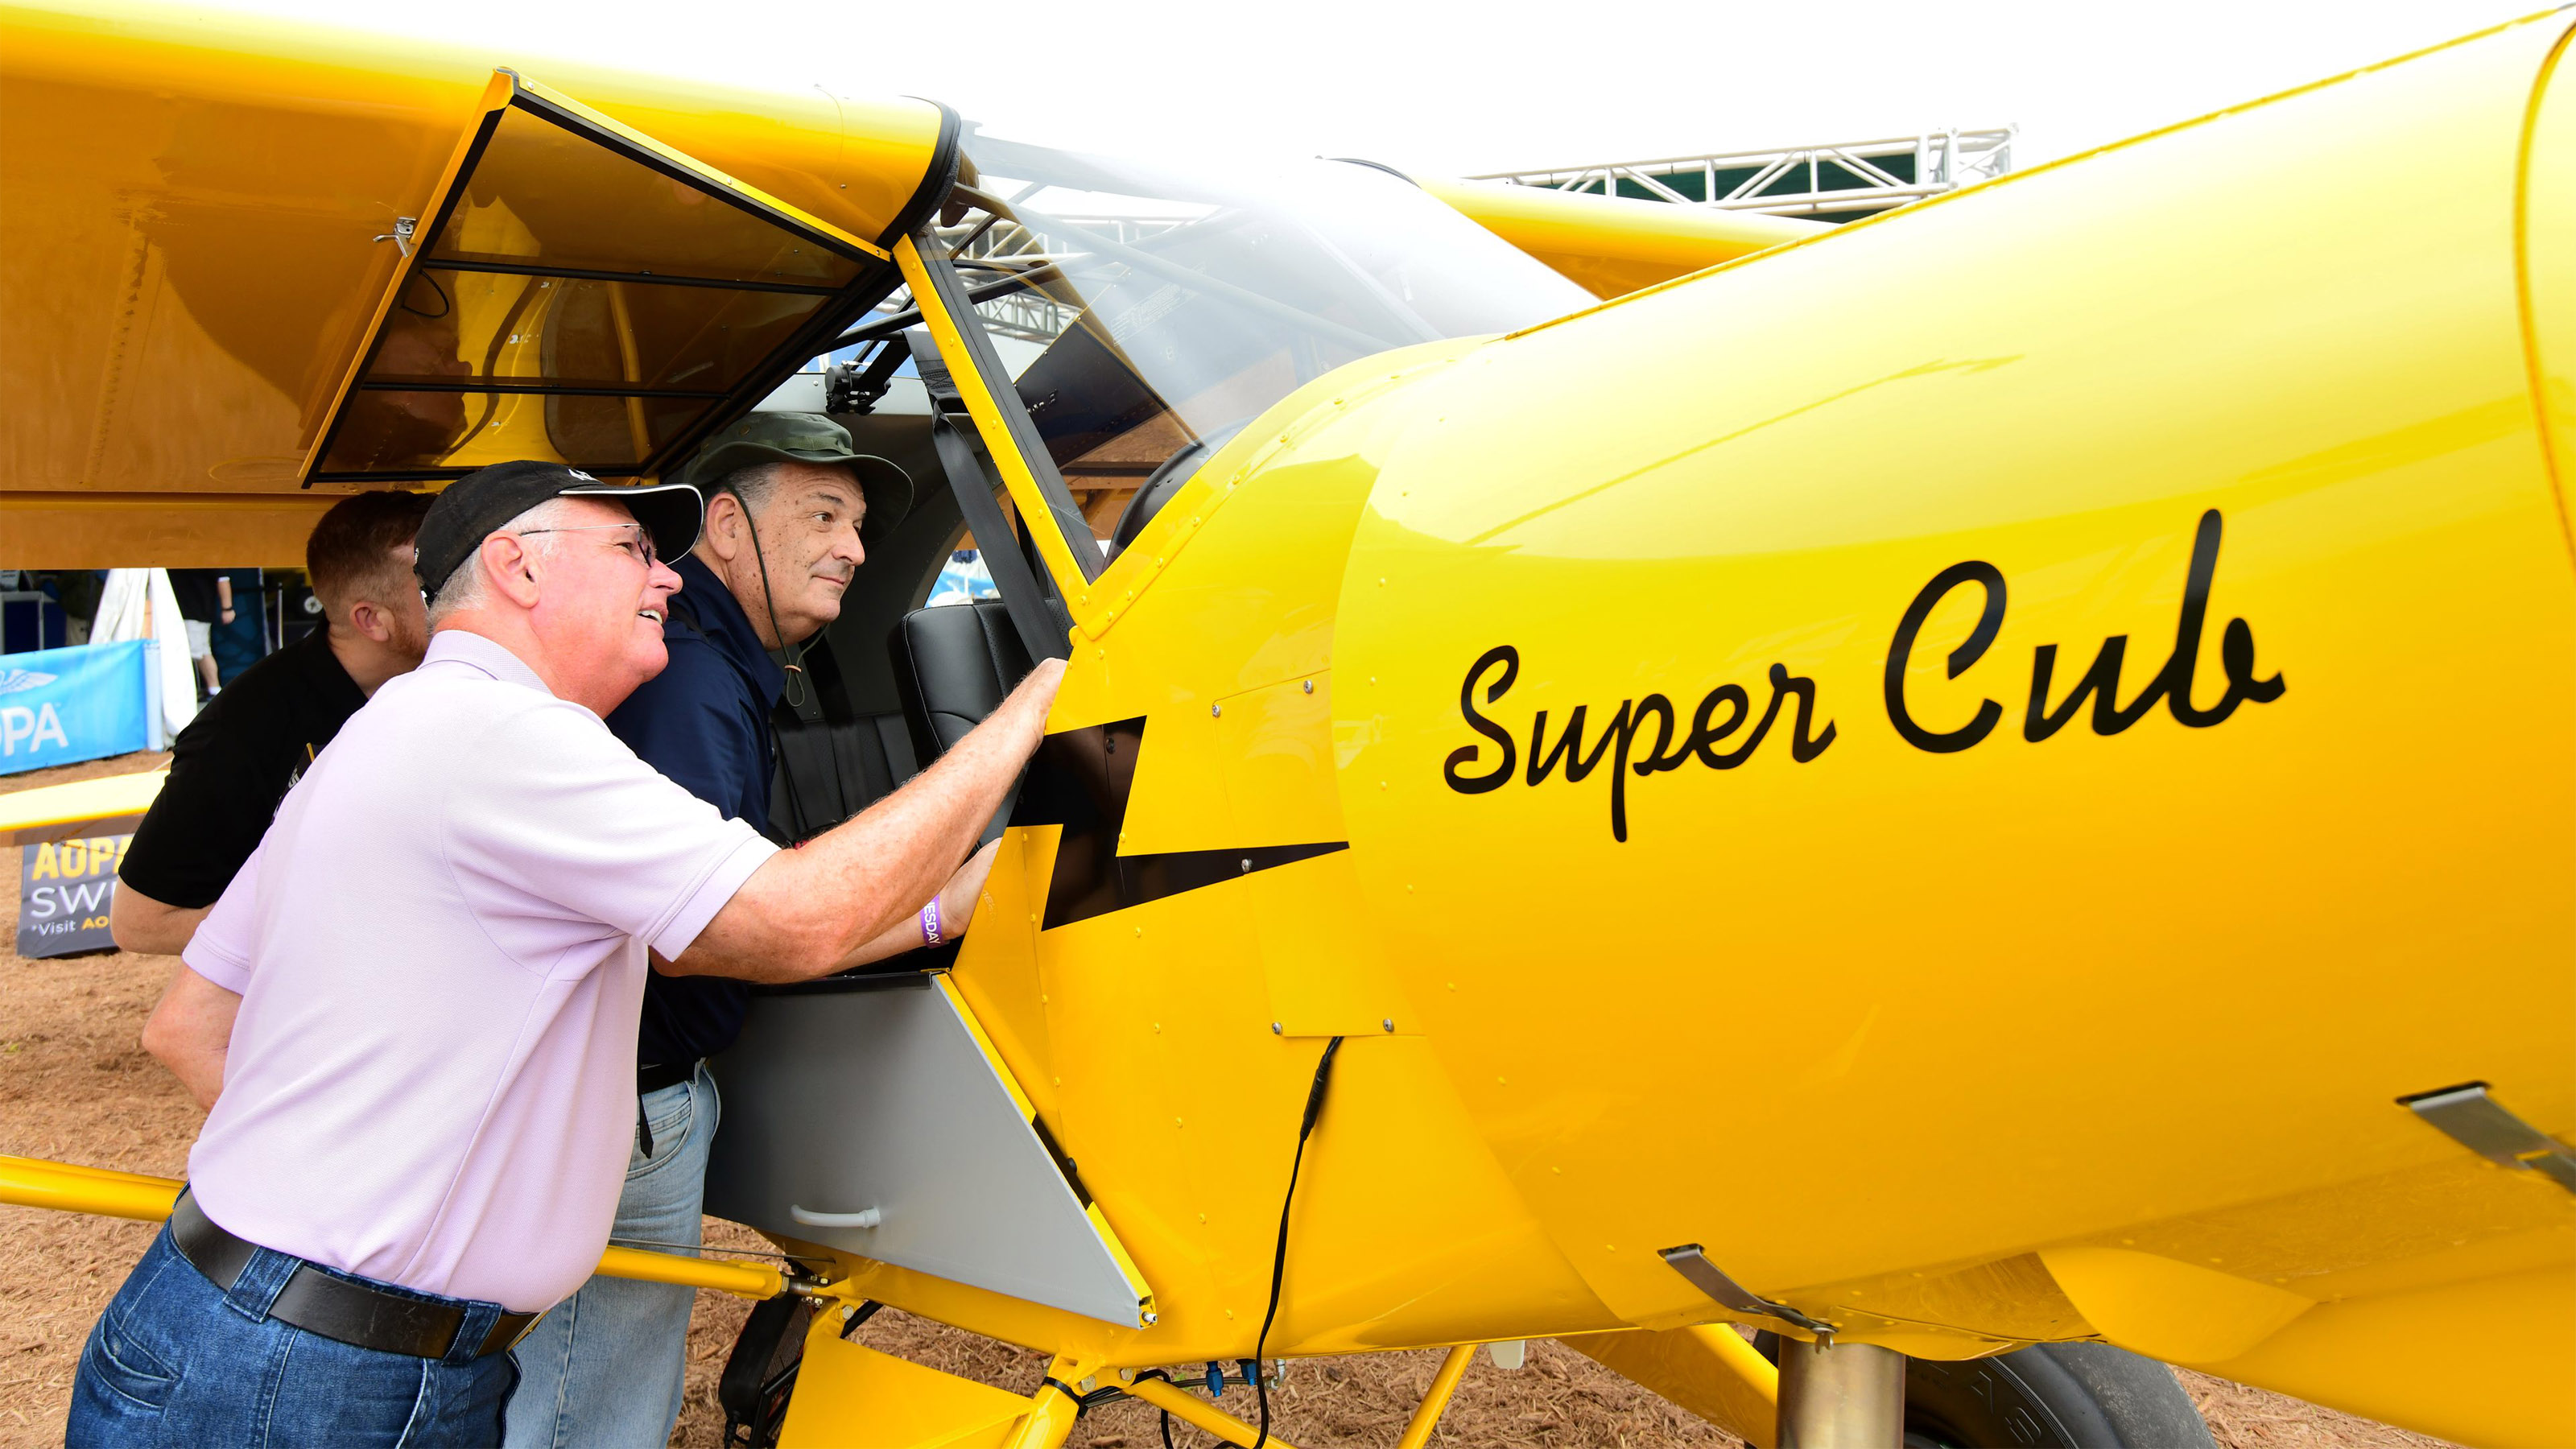 Visitors to the 2018 Sun 'n Fun International Fly-In and Expo inspect the cockpit of AOPA's Sweepstakes Super Cub. The airplane's refurbishment was completed by Baker Air Service in Baker, Mont., just in time for the airplane to be flown to Lakeland. Photo by Mike Collins.